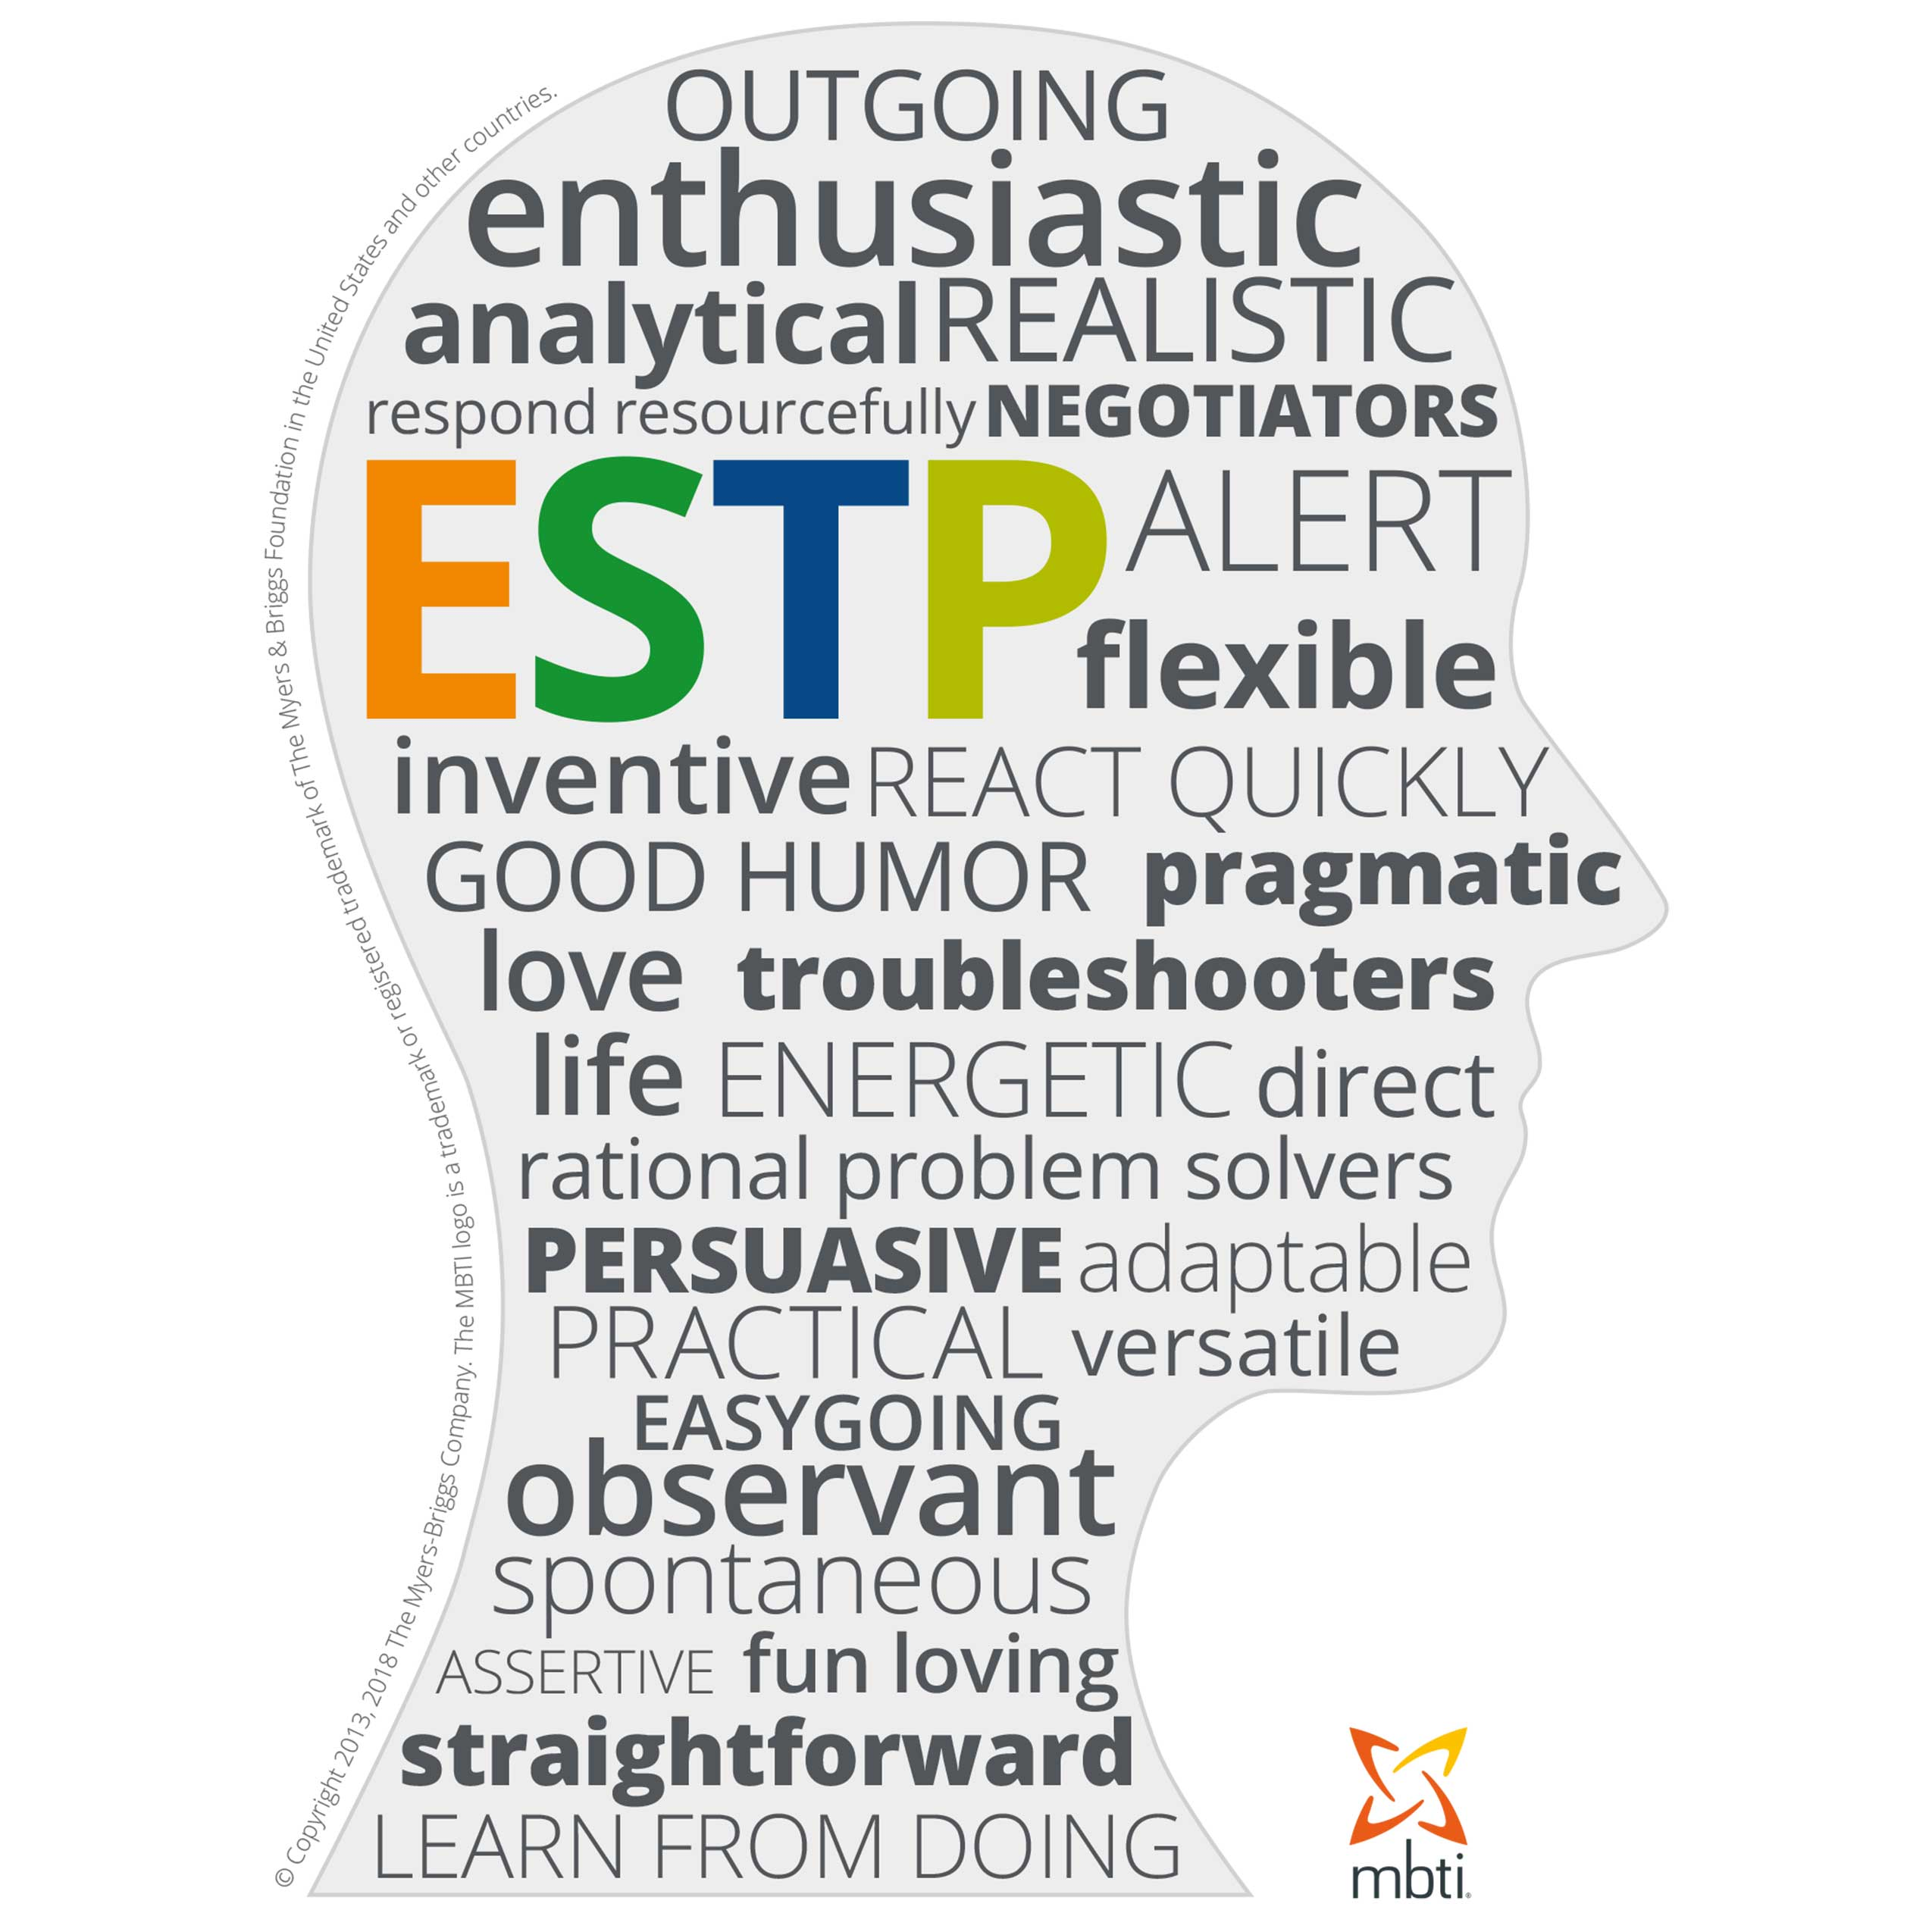 Typical characteristics of an ESTP